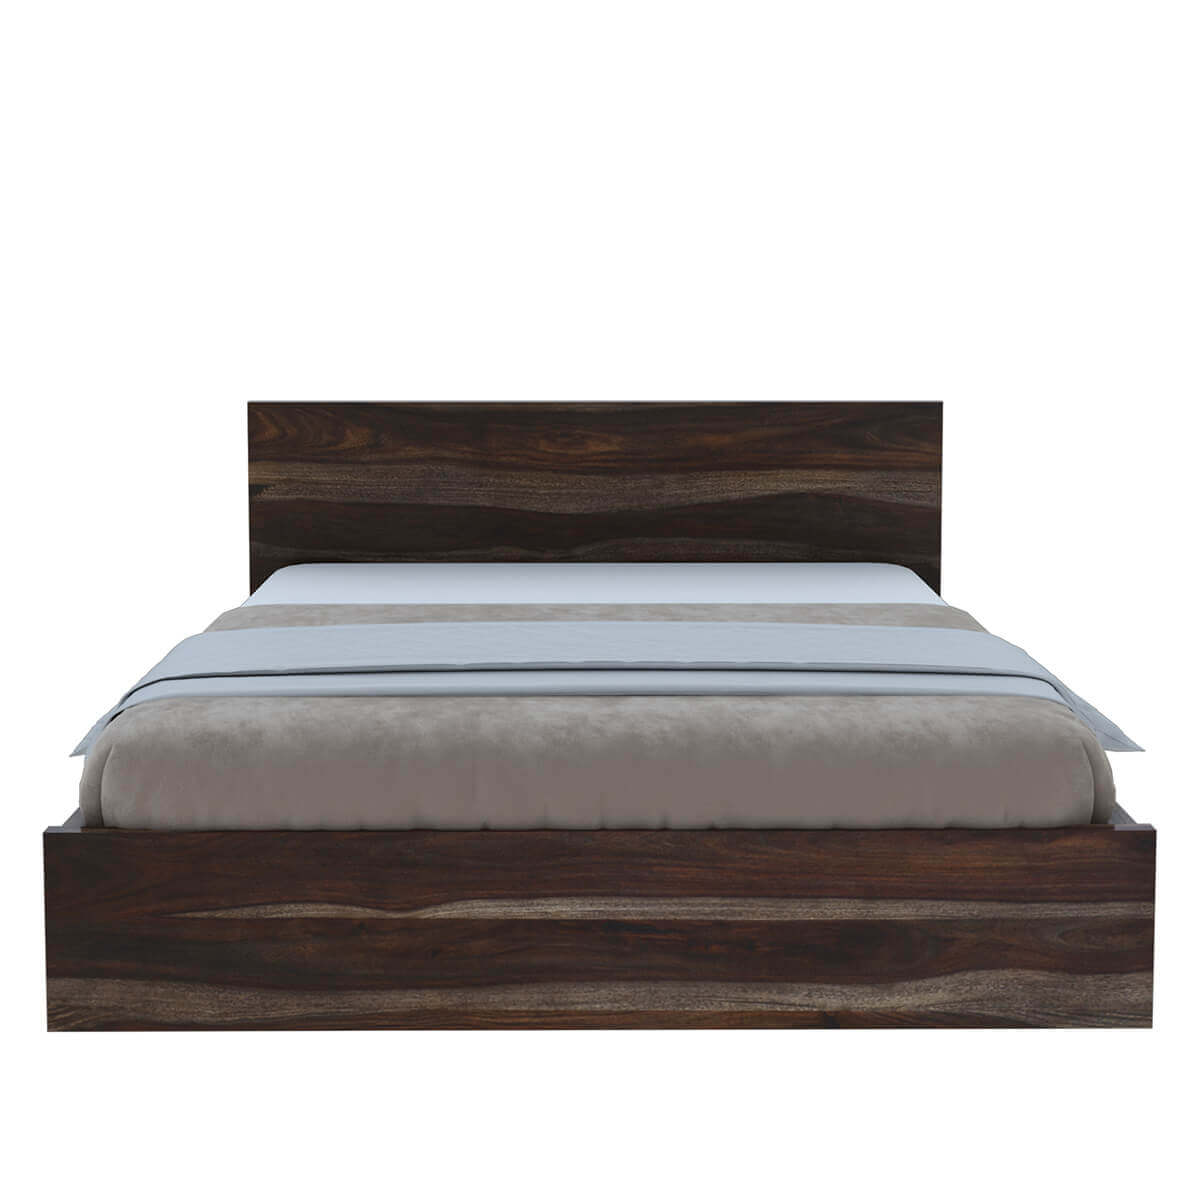 Paganus modern simplicity solid wood platform bed frame for Wooden bed frame and mattress